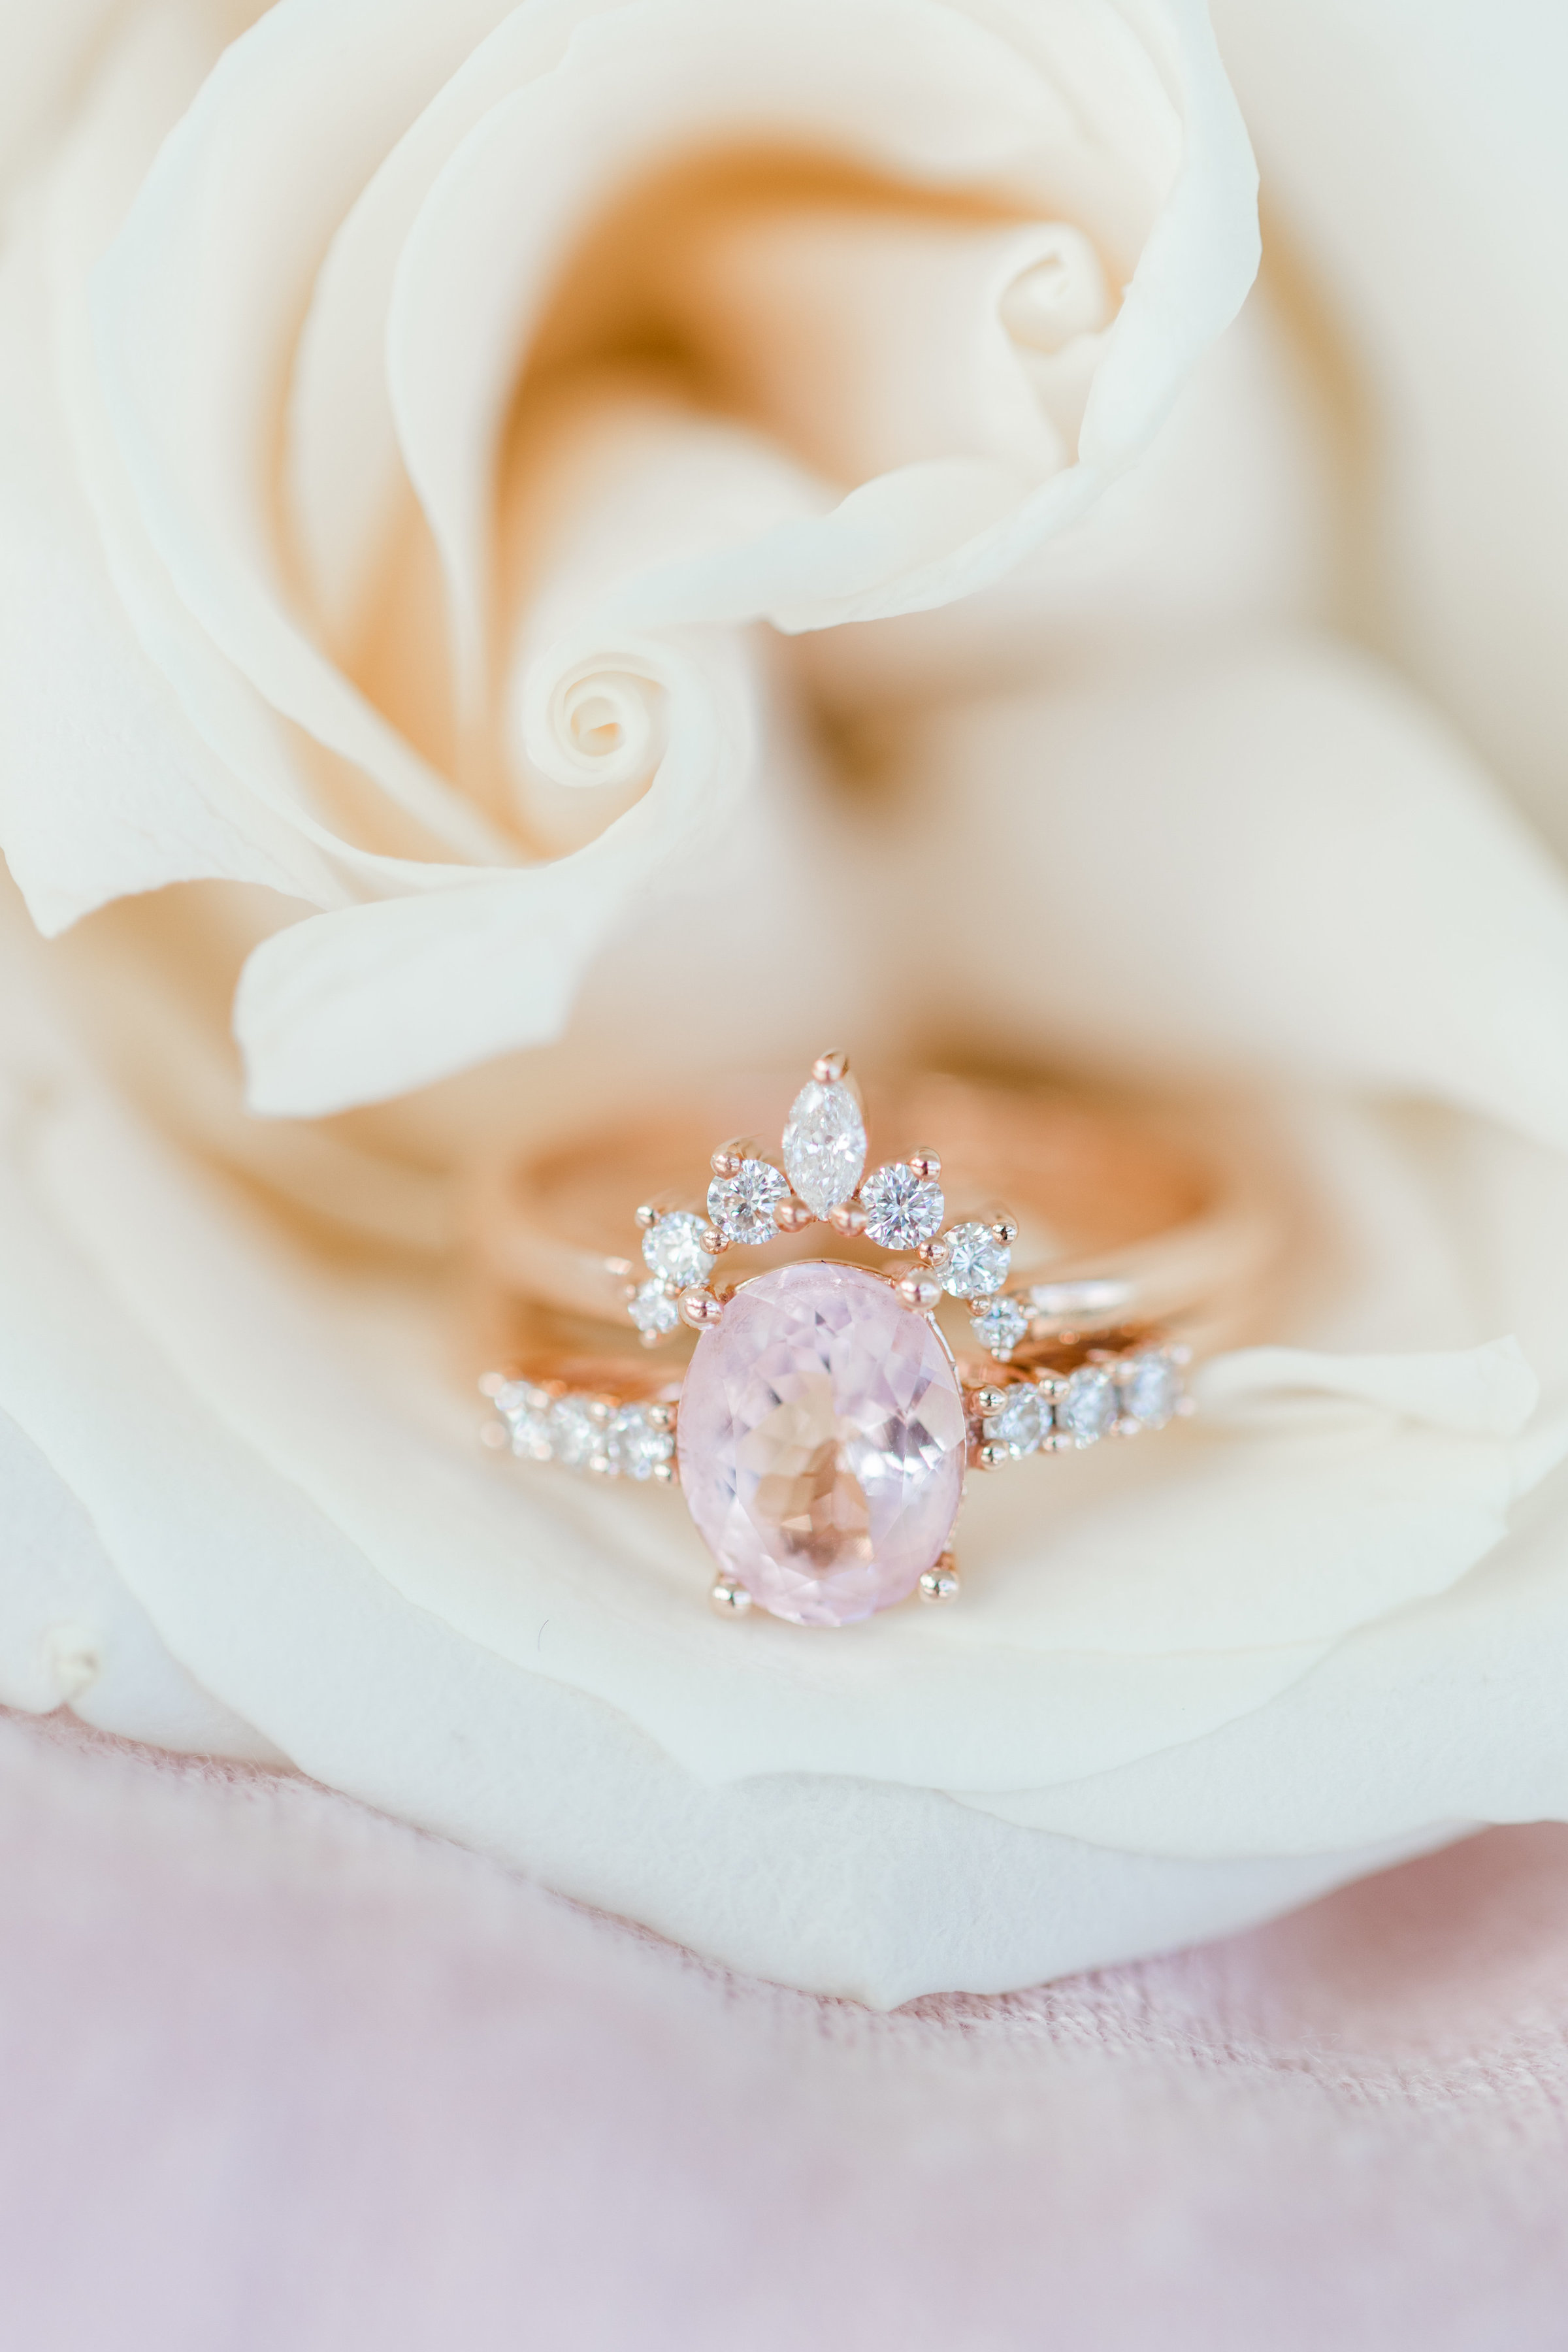 Bride's rings photographed together for an AZ wedding